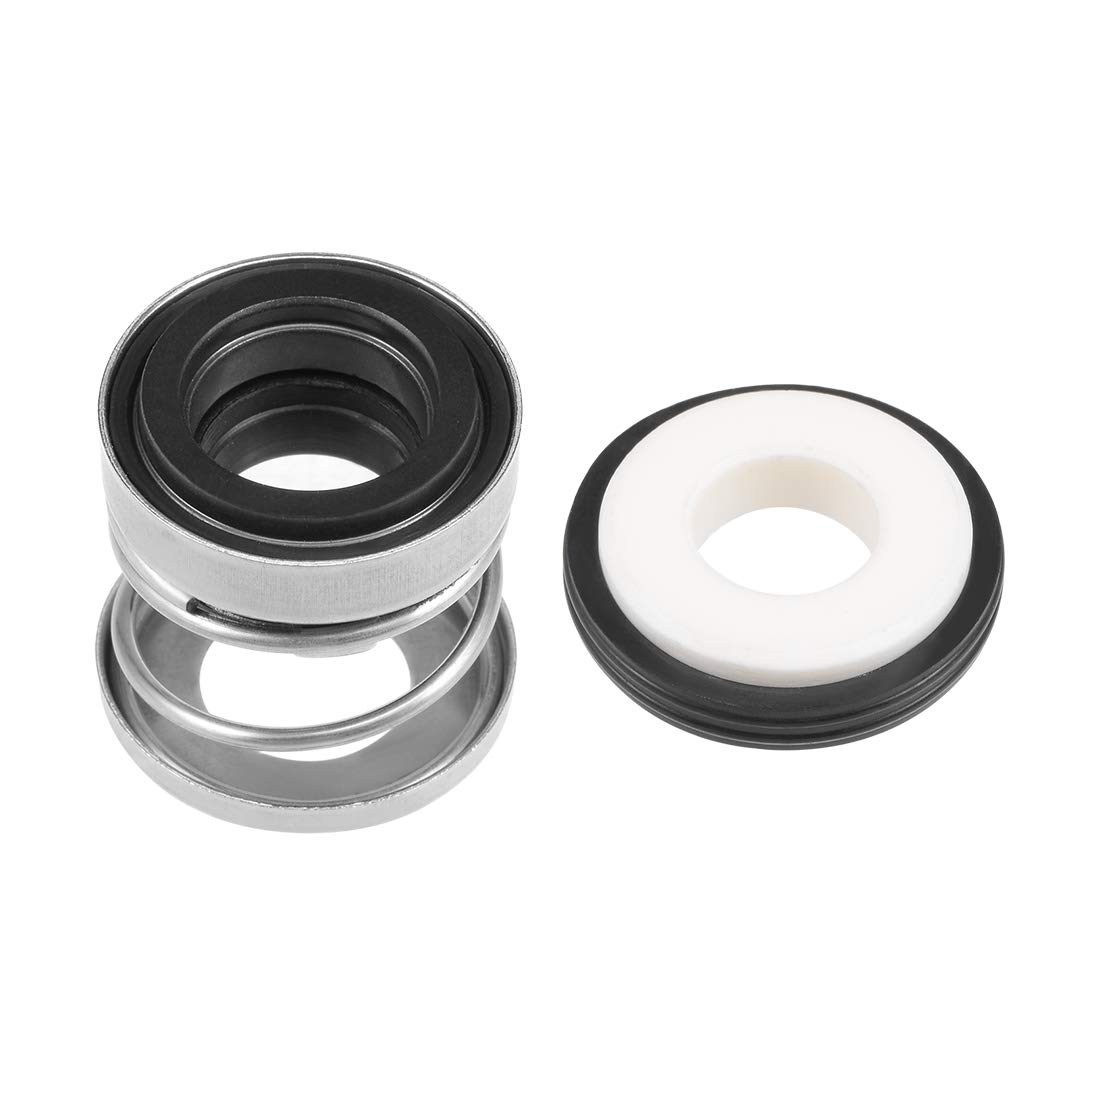 uxcell Mechanical Shaft Seal Replacement for Pool Spa Pump 108-8